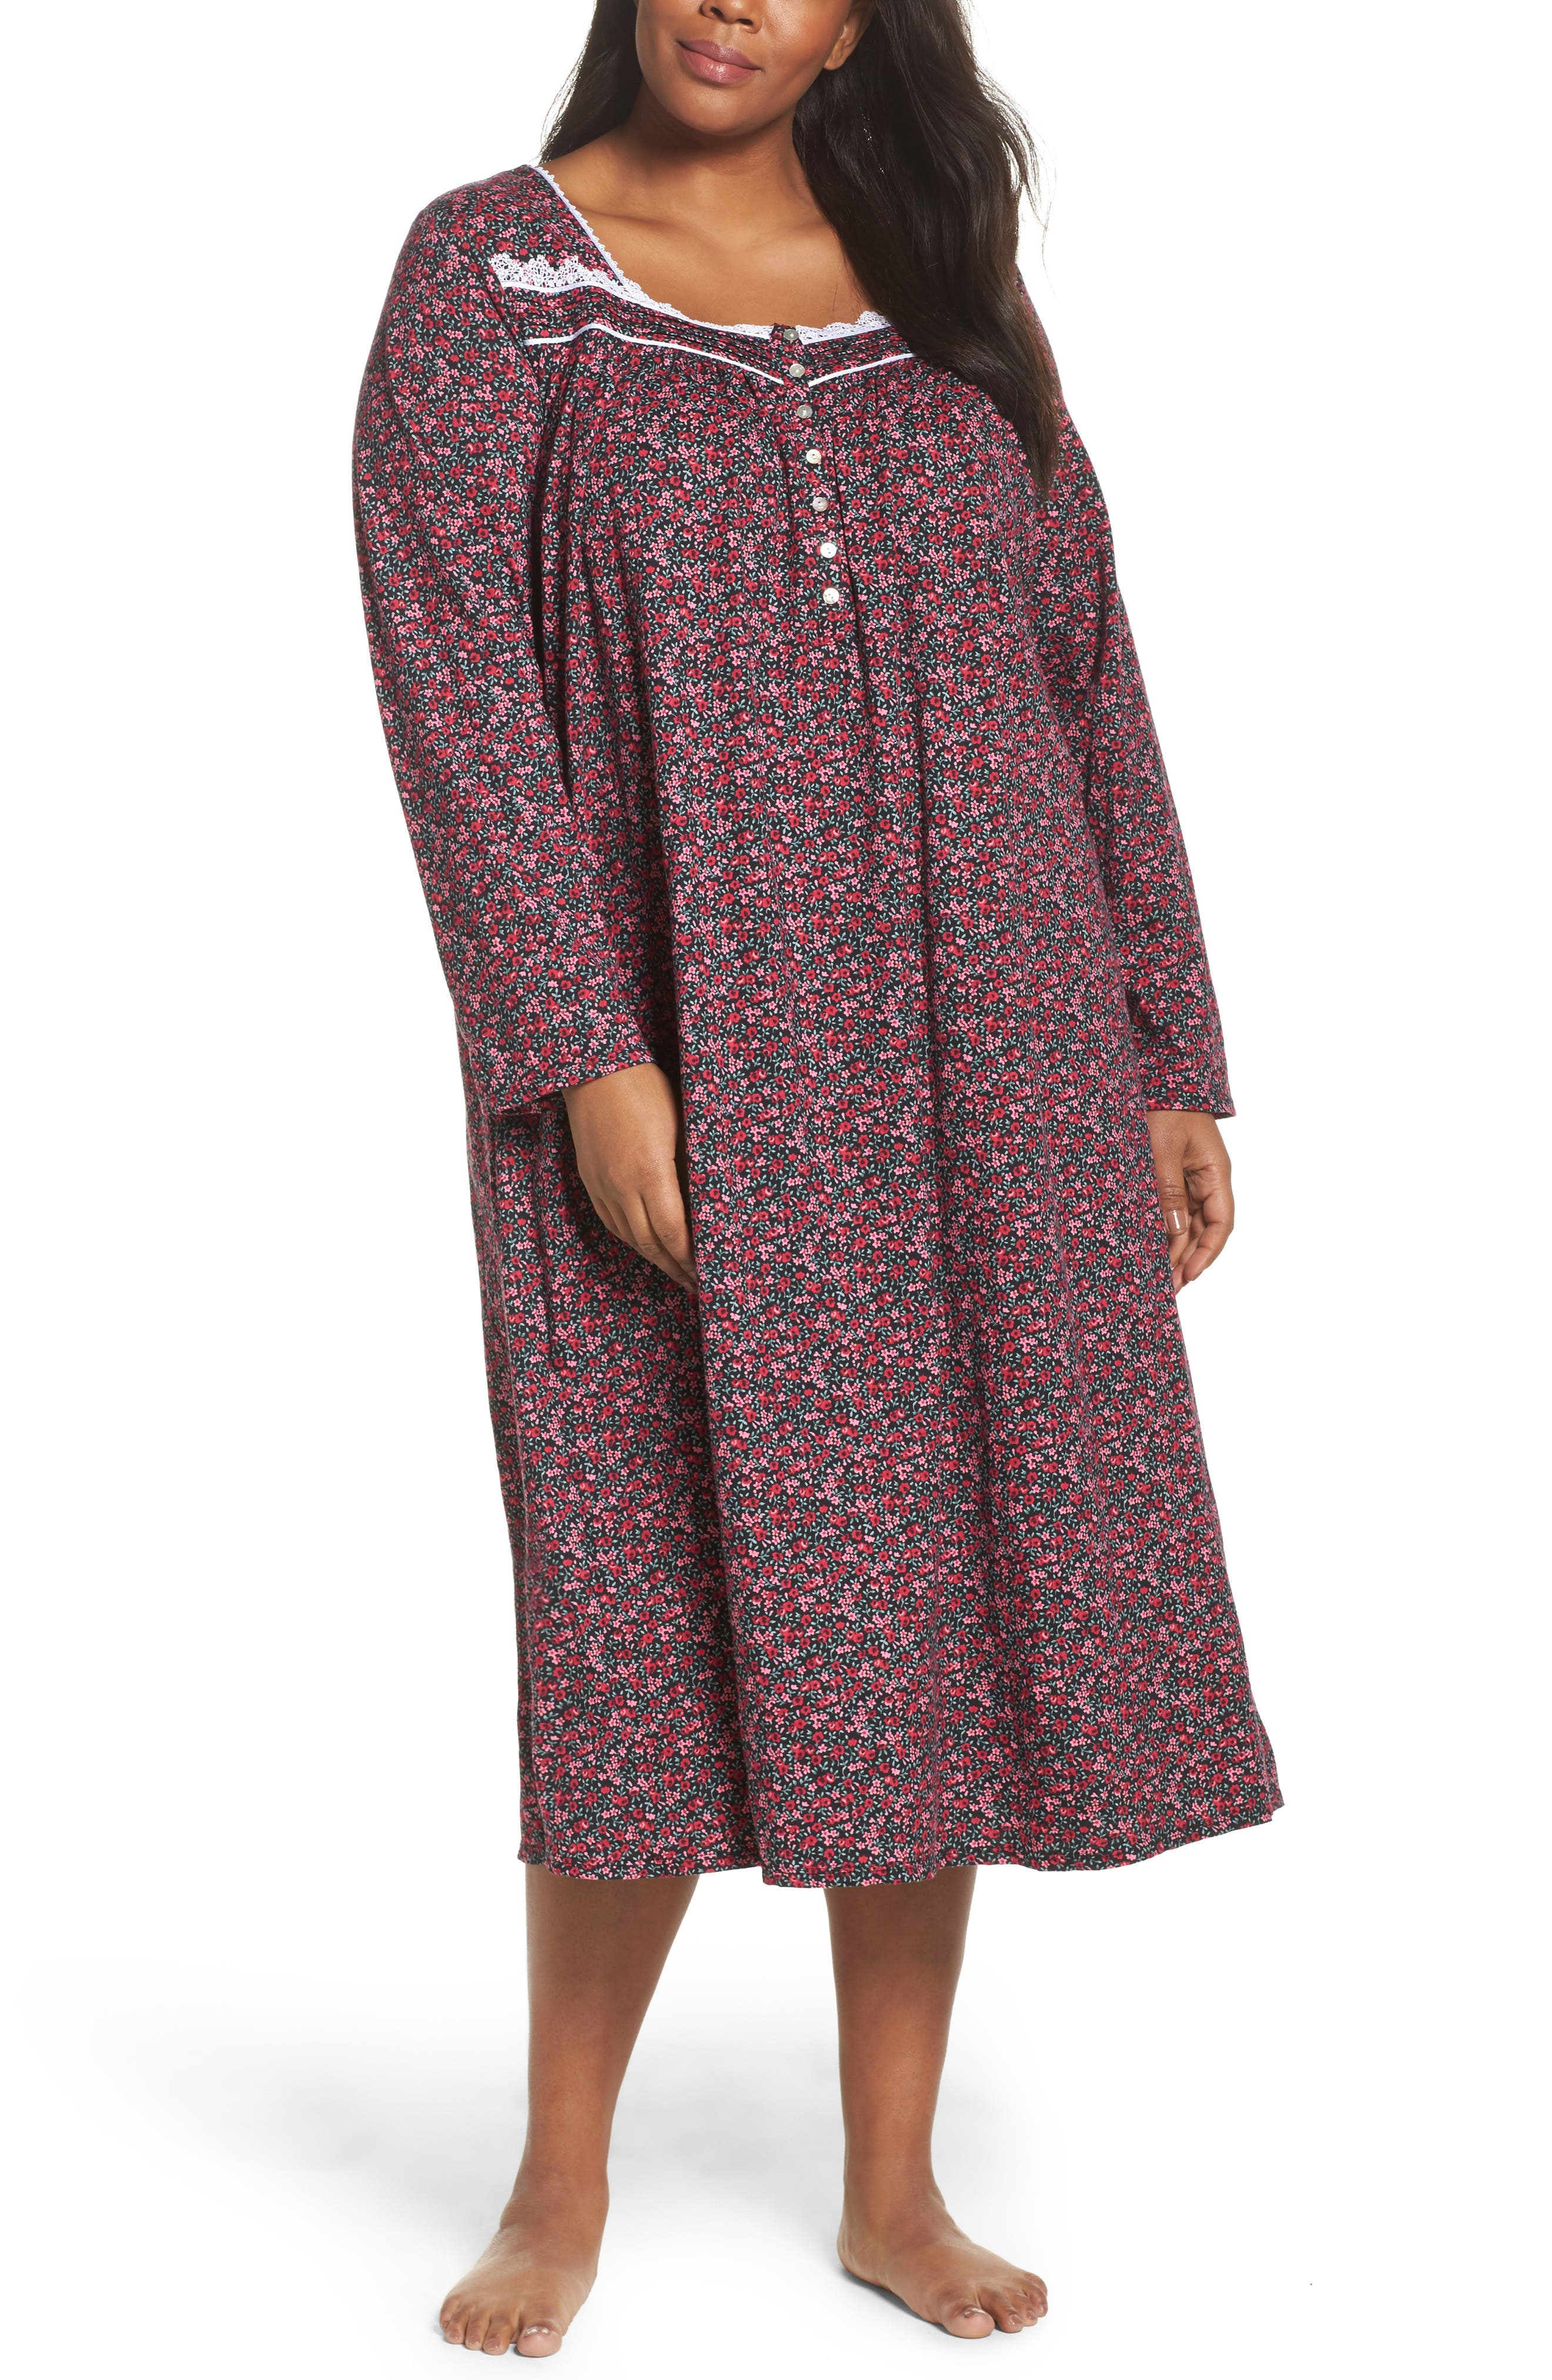 Cotton Nightgown,                         Main,                         color, Black With Floral Multi